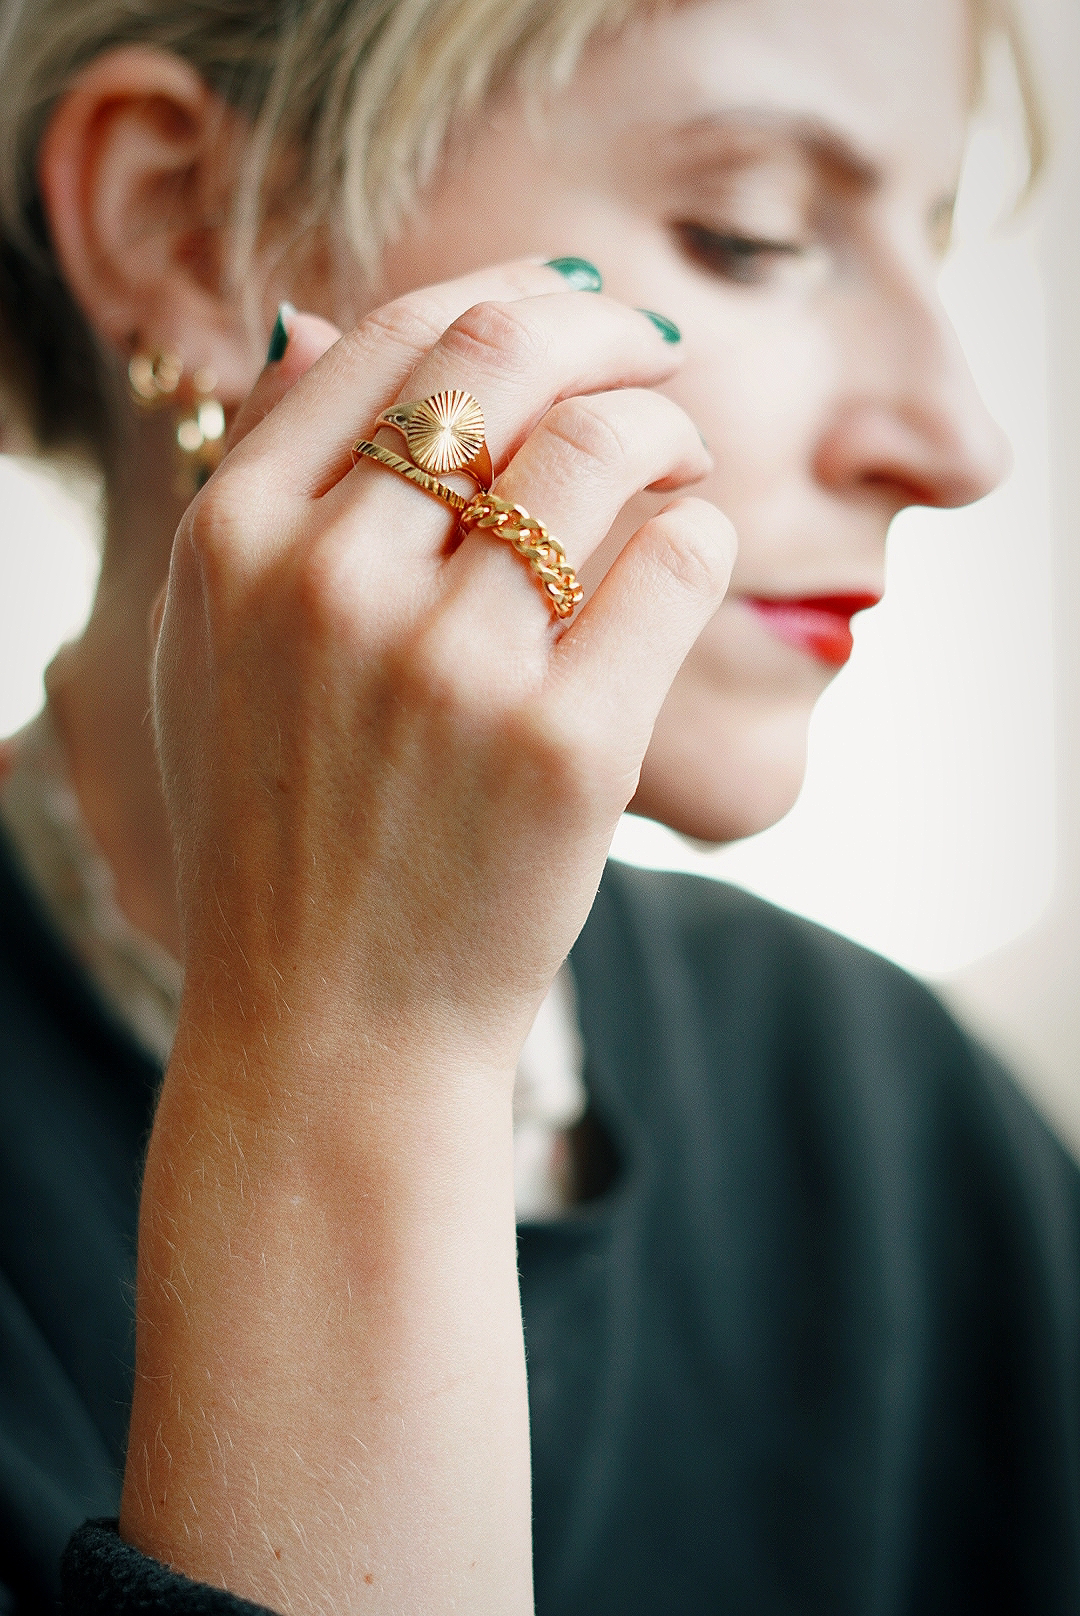 Amy's hand is in focus in front of her face which is not, on her hand are three gold rings; one chain linked, one plain band and one signet ringAmy's hand is in focus in front of her face which is not, on her hand are three gold rings; one chain linked, one plain band and one signet ring. She has green nail varnish on.